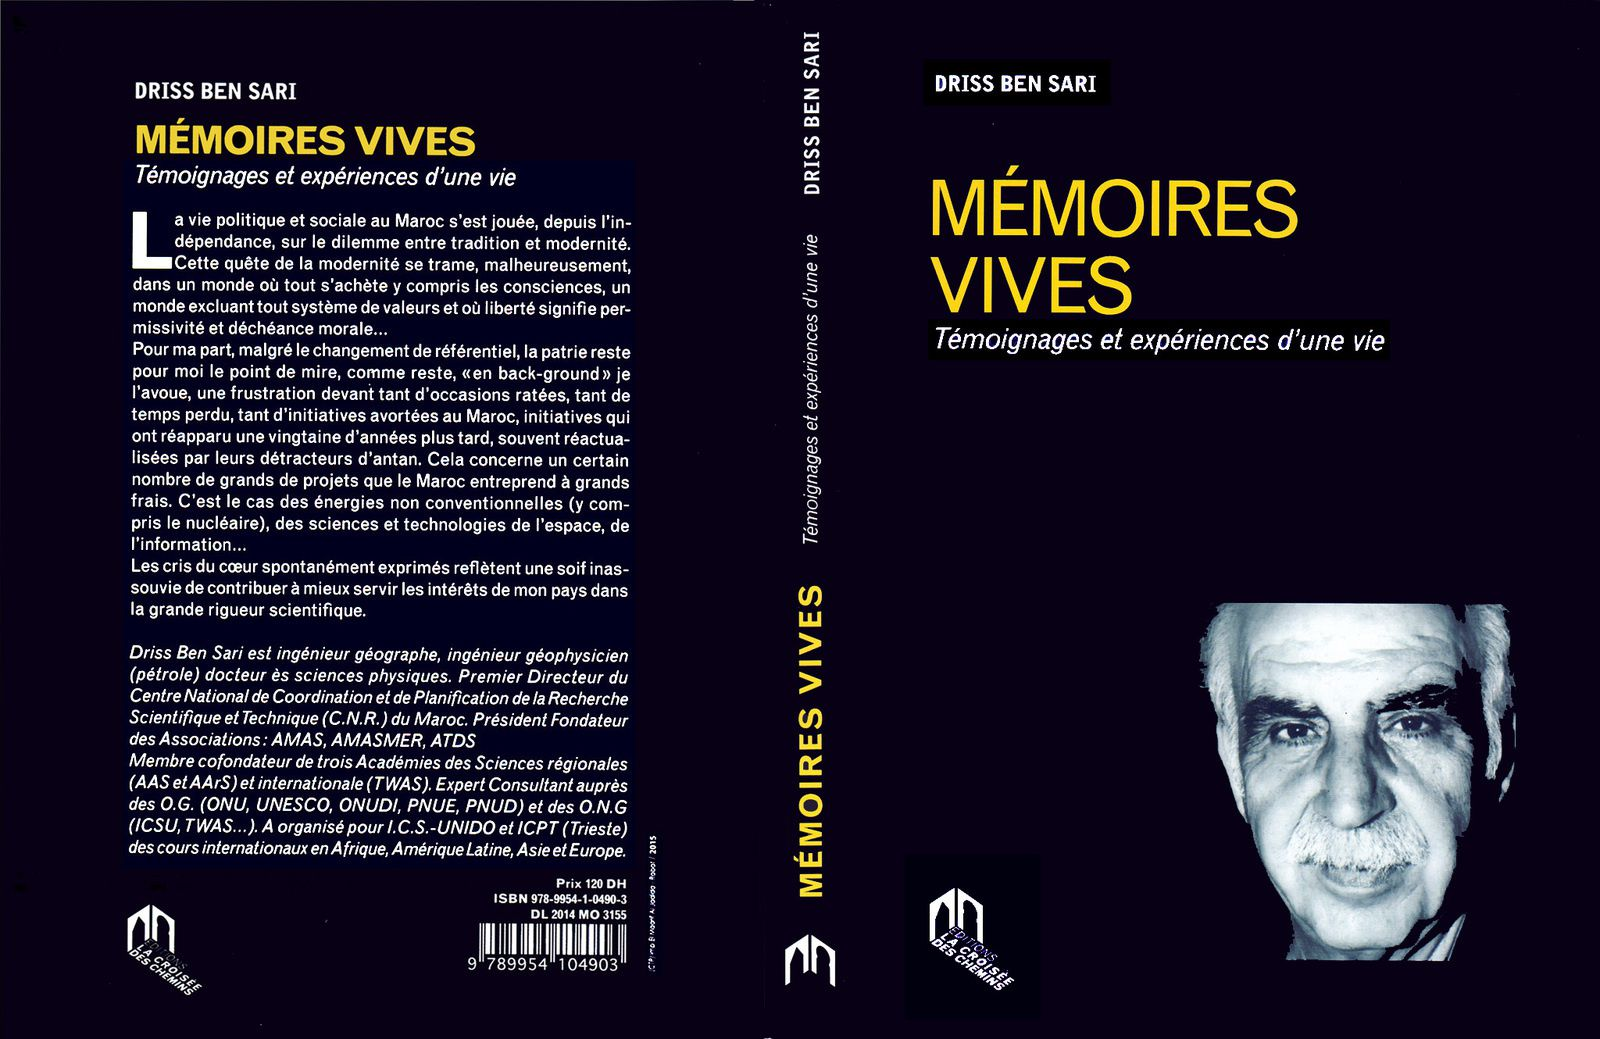 Driss Ben Sari: Mémoires vives!(Edition 1)